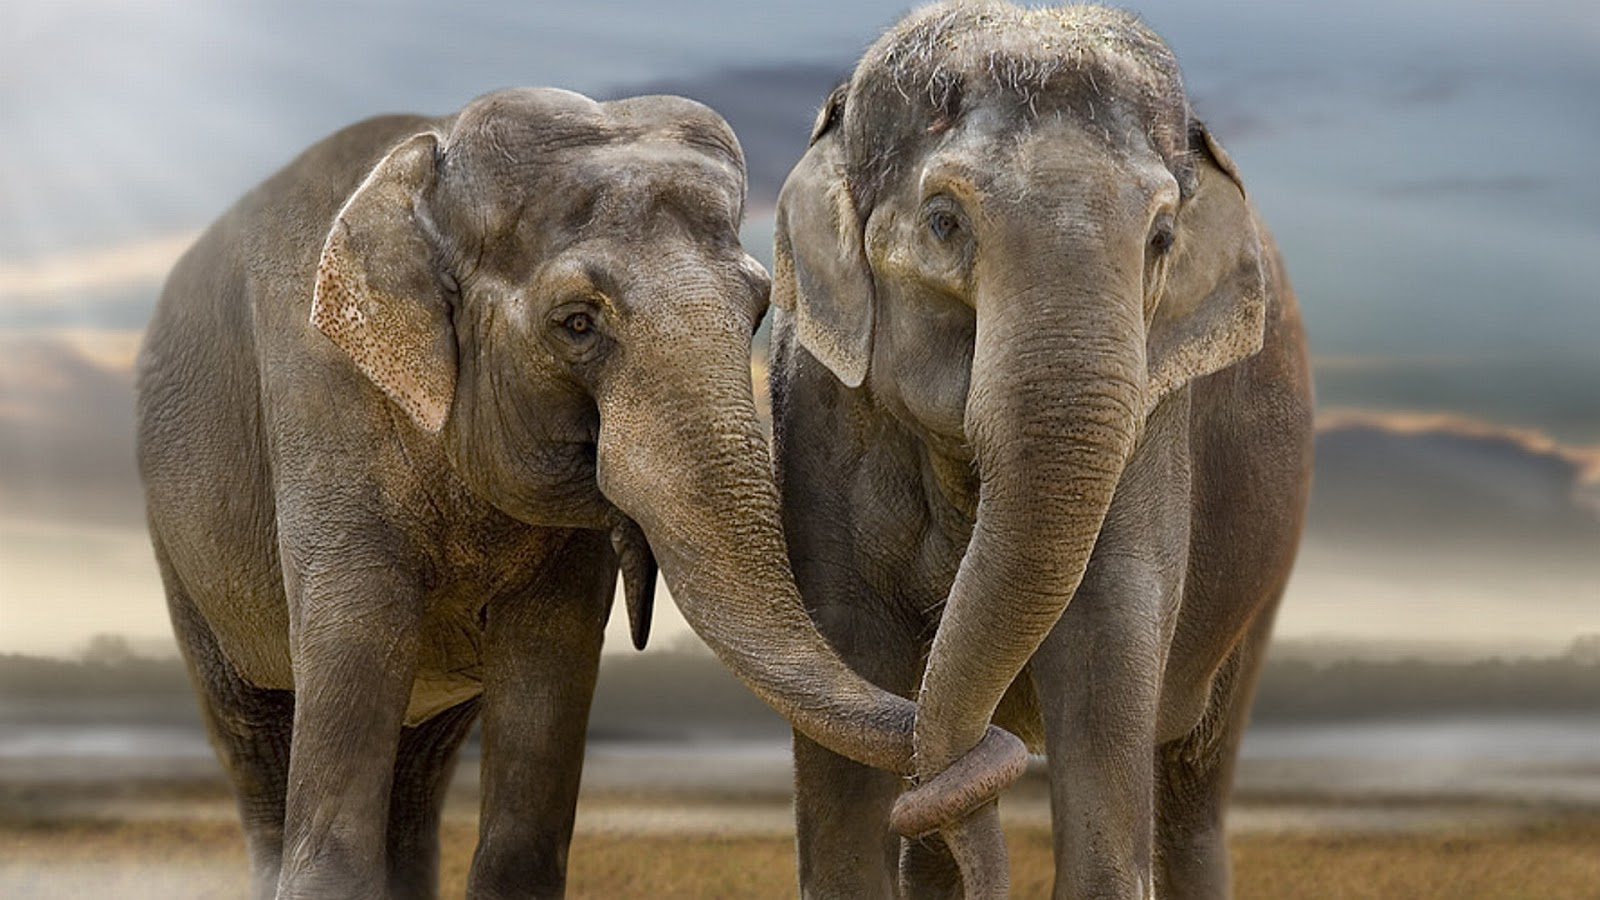 animals wallpapers hd elephant wallpapers hd